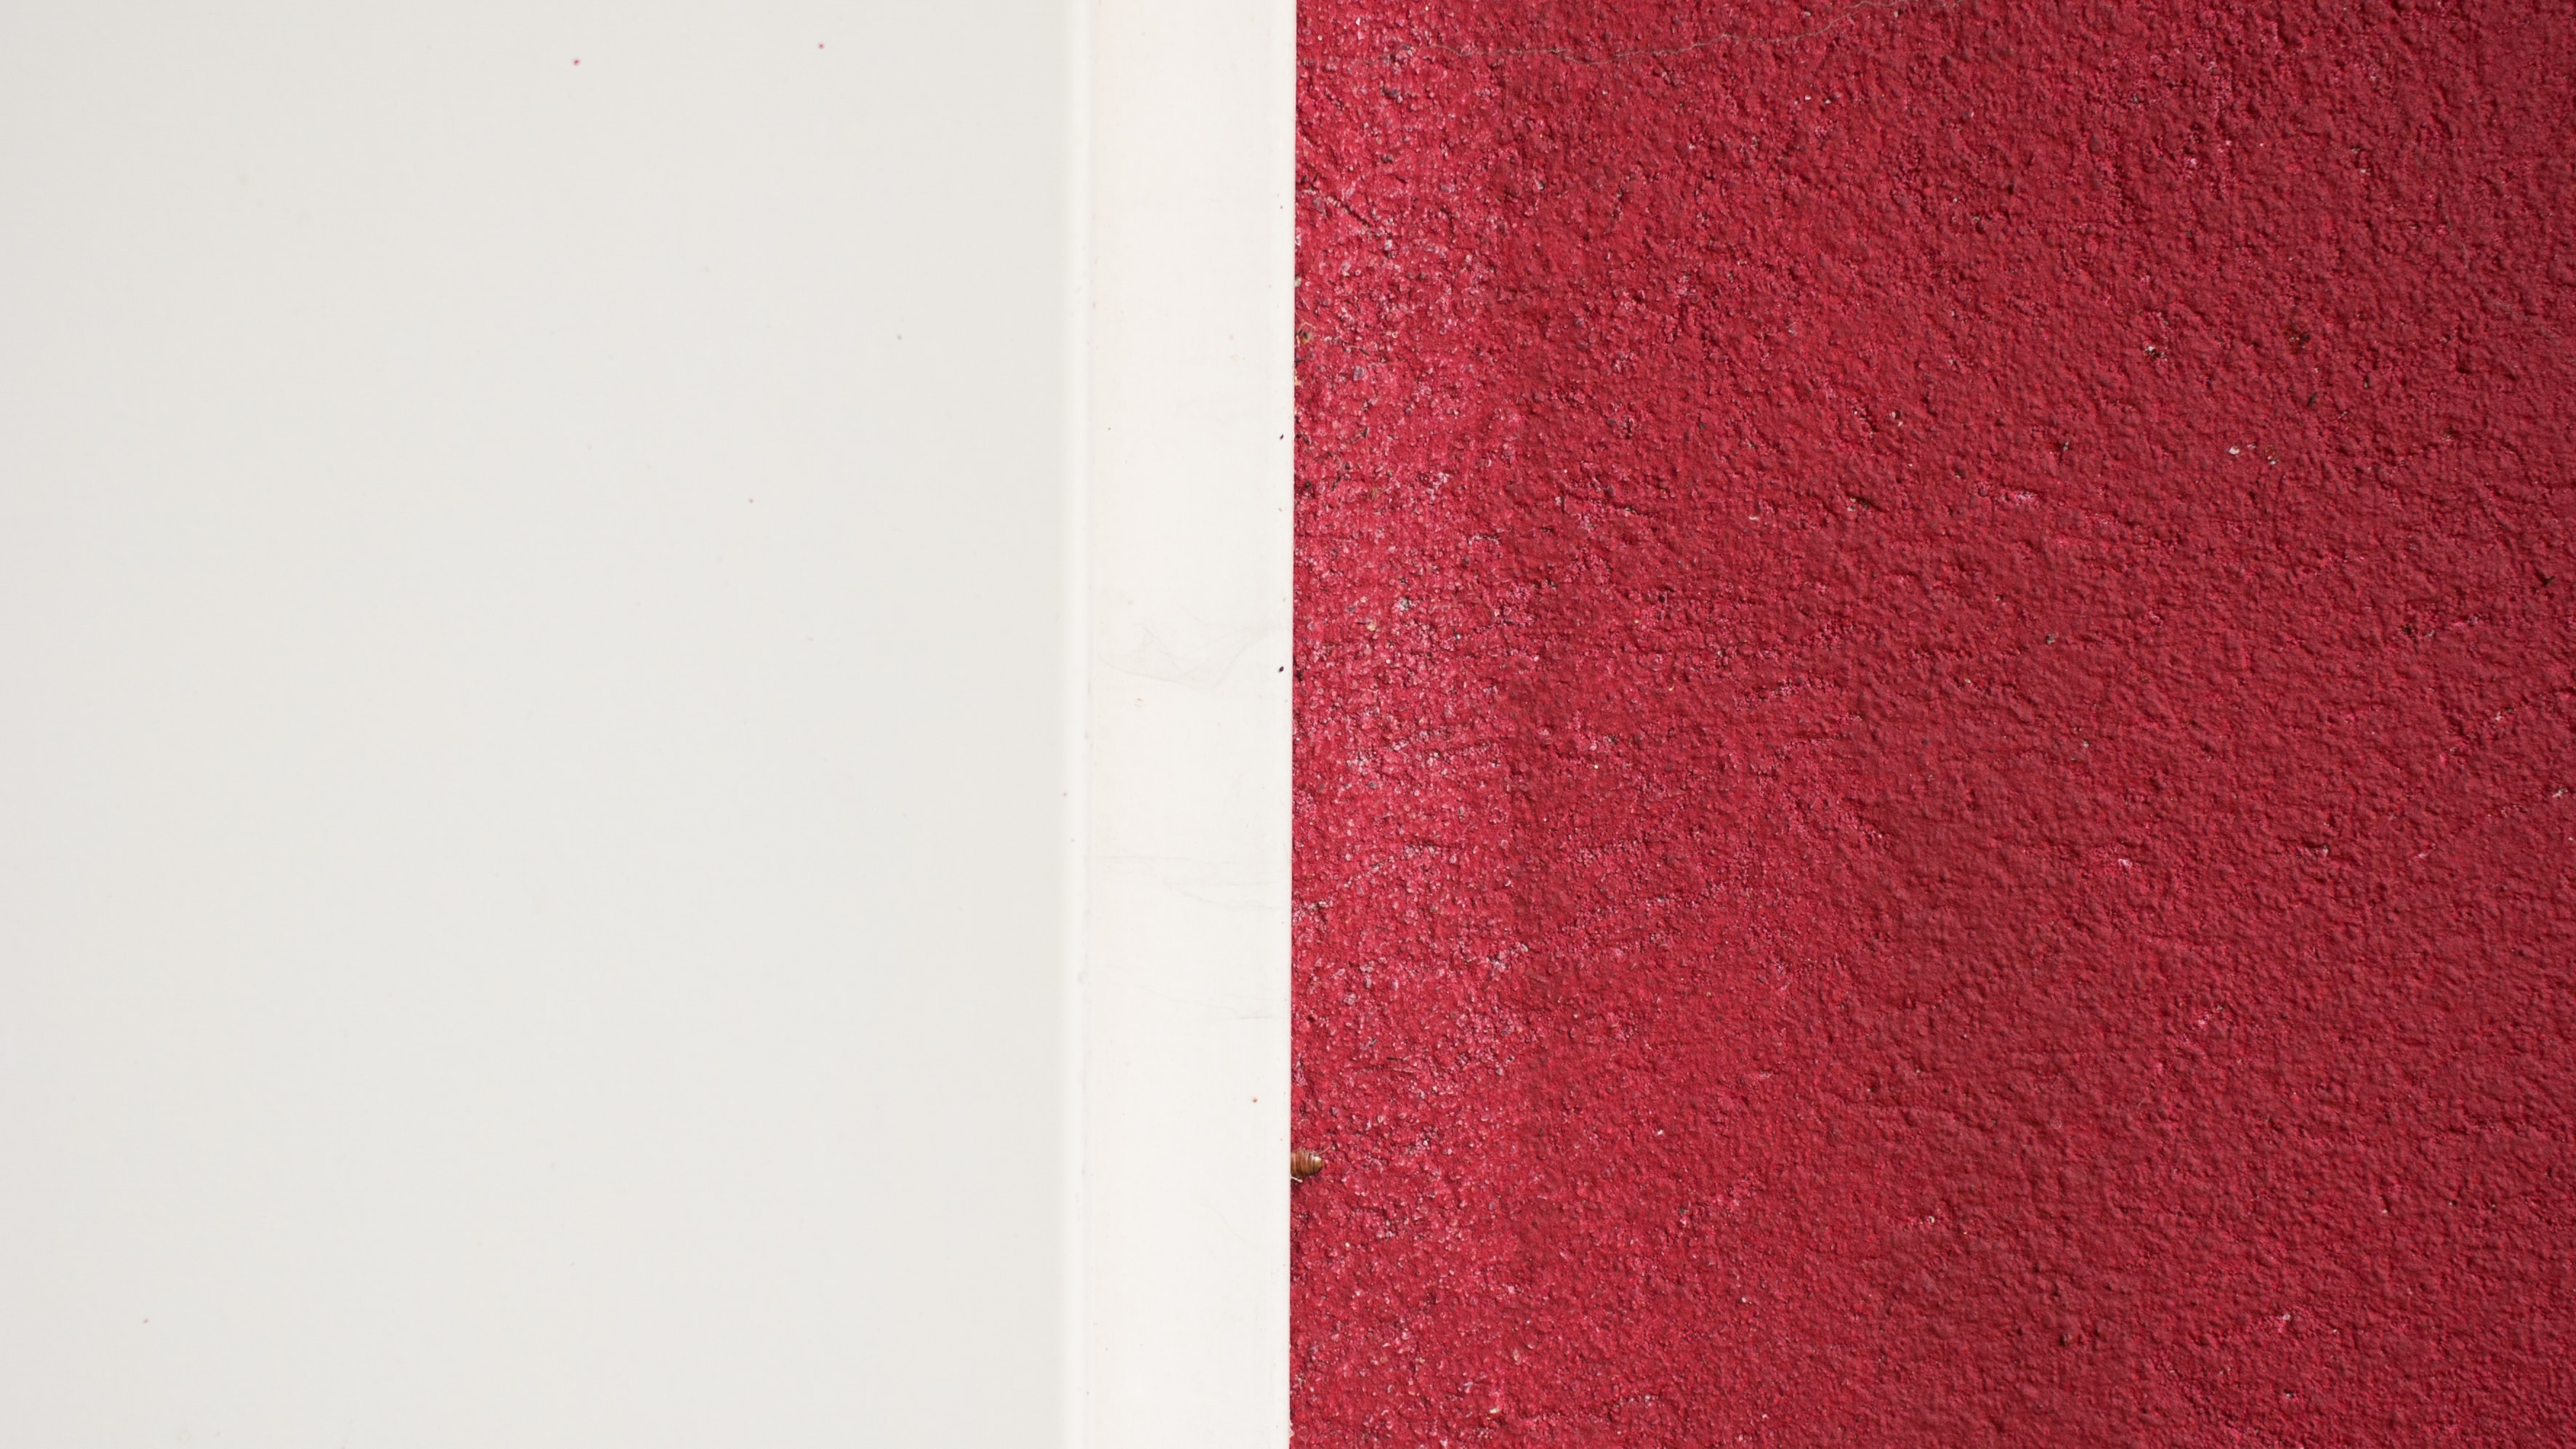 white and red concrete pavement